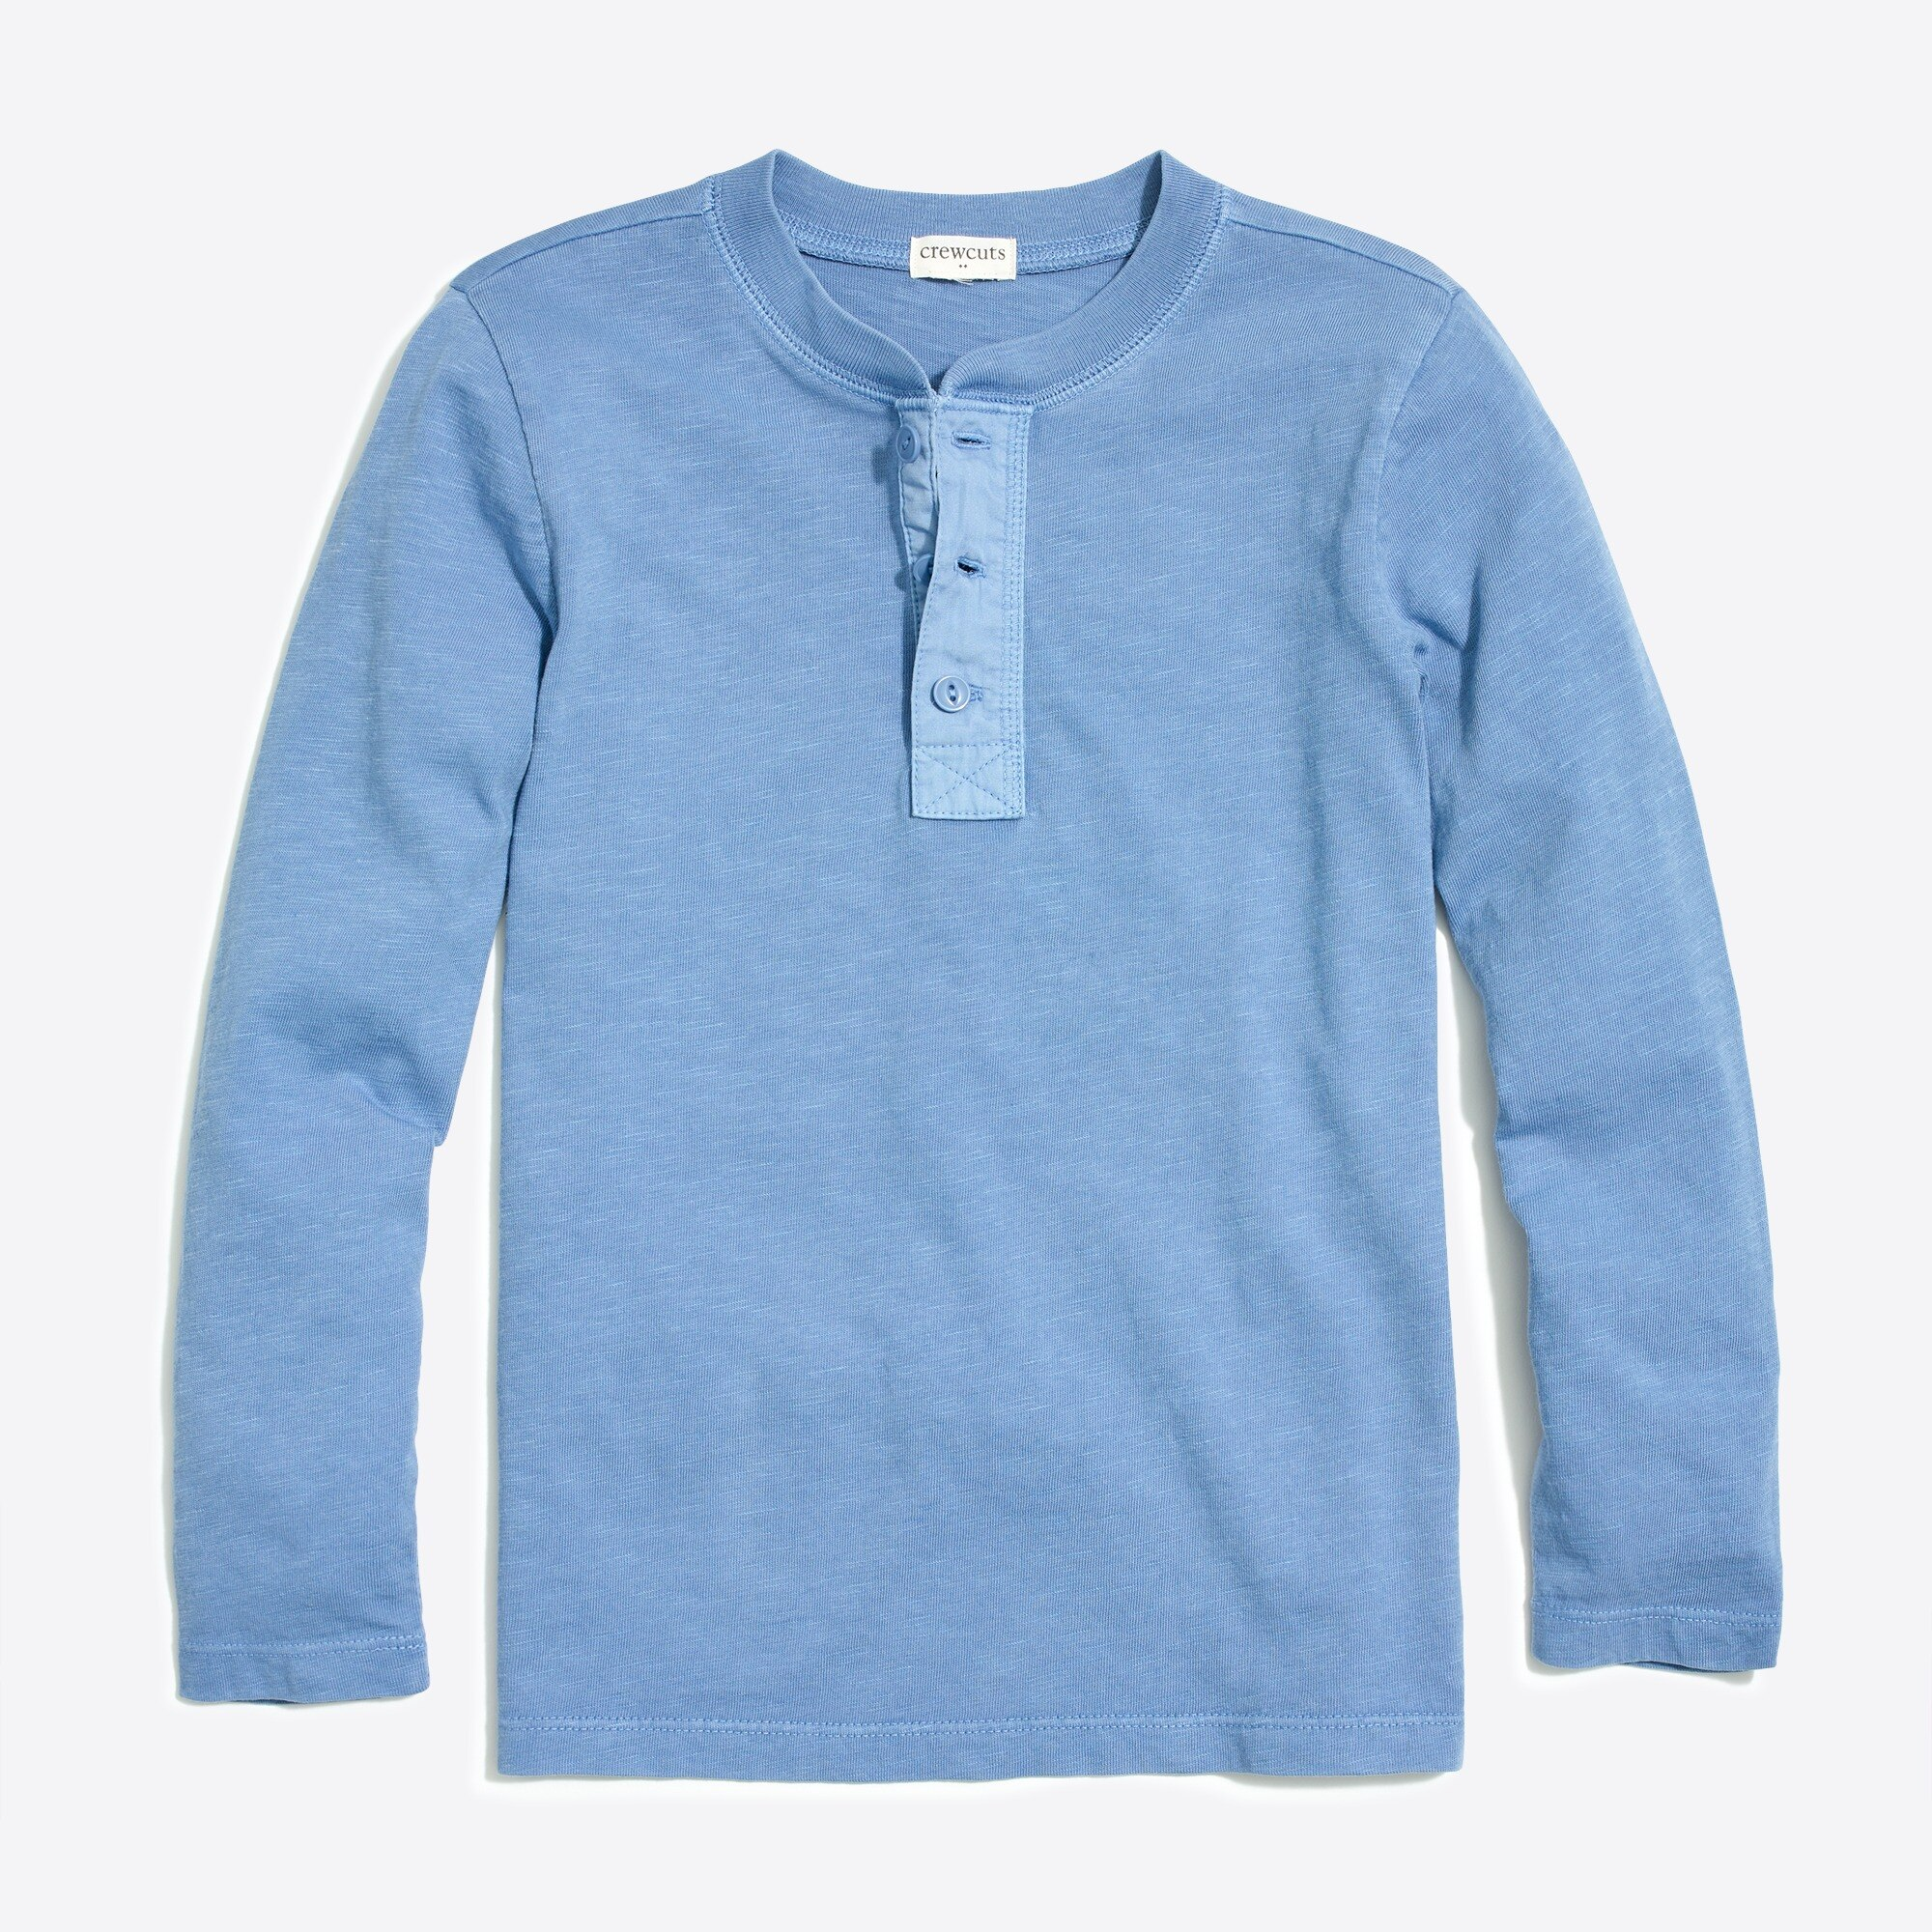 Boys' long-sleeve garment-dyed henley